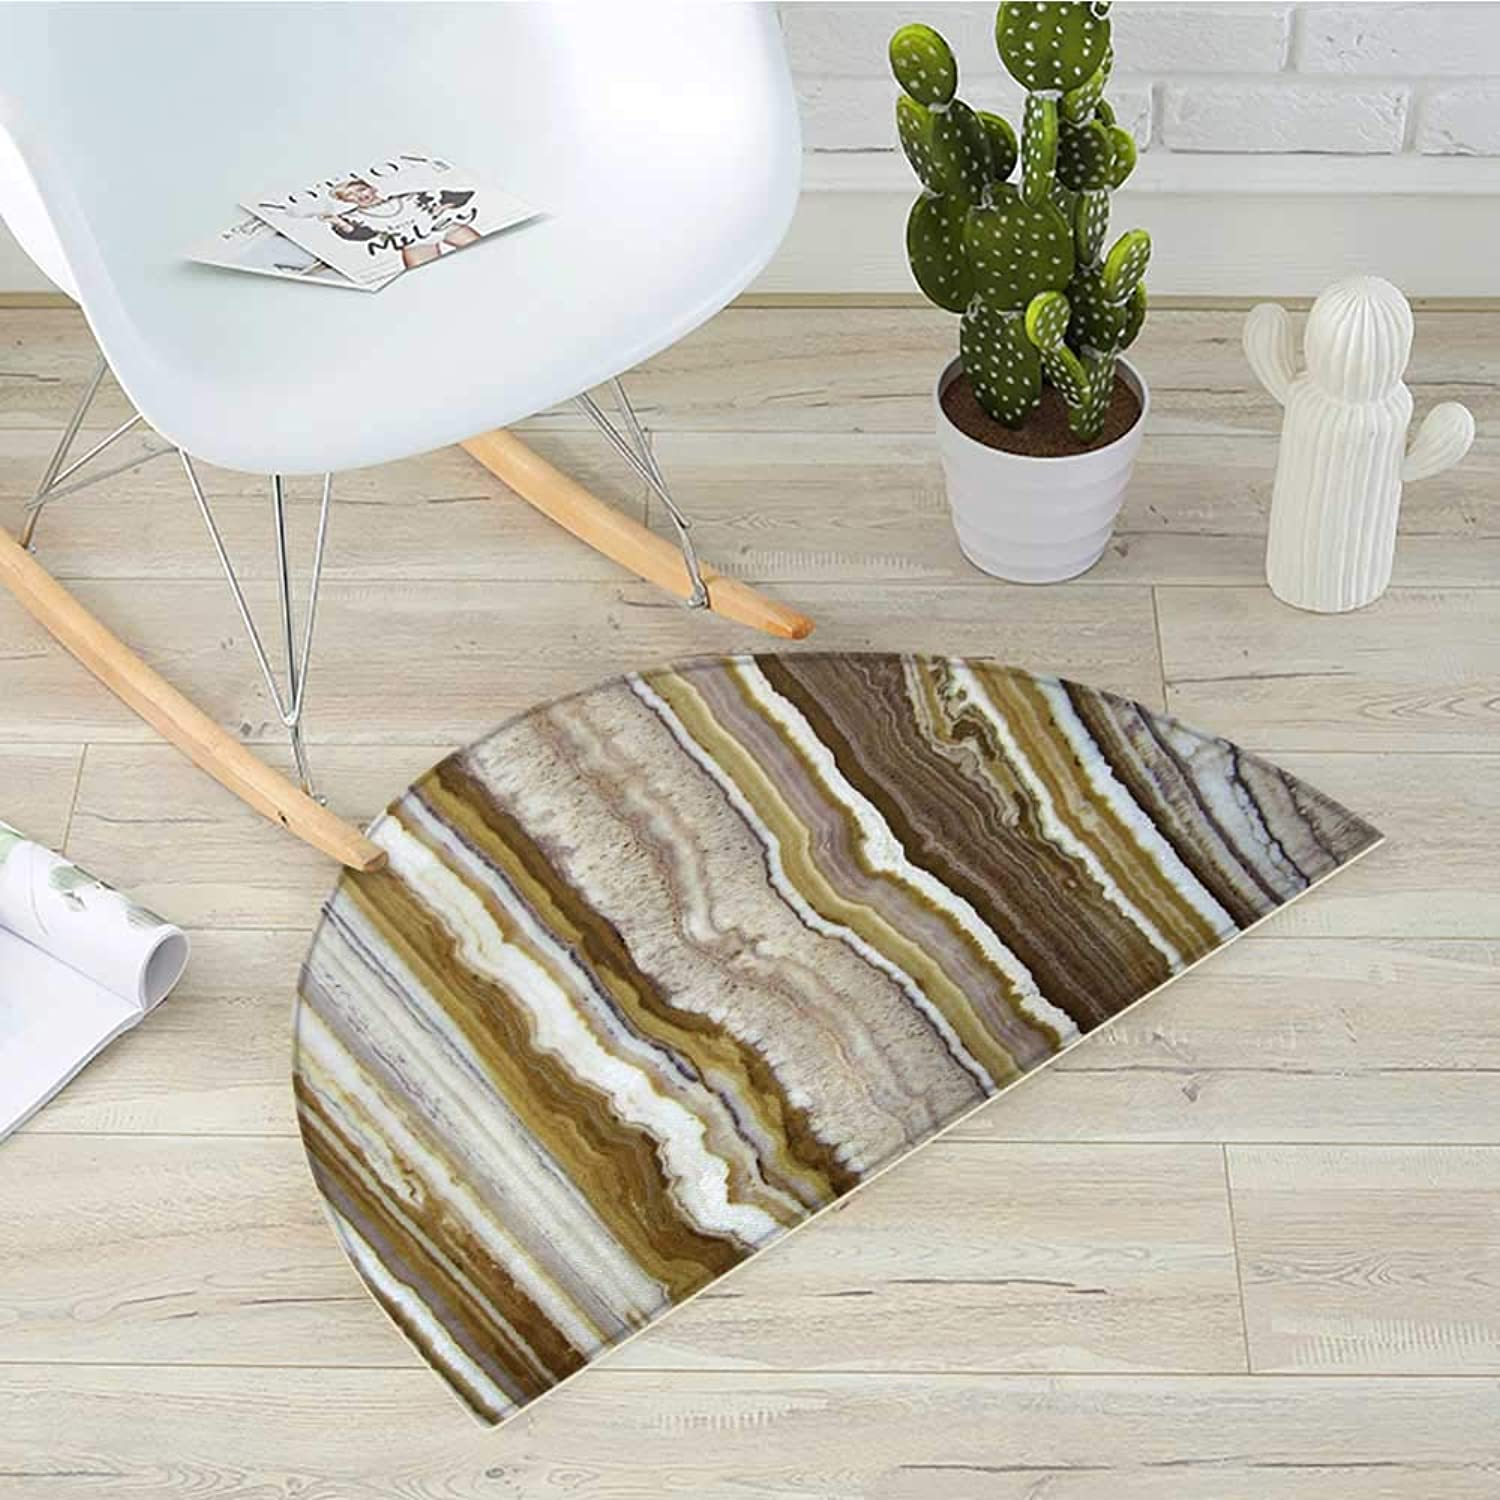 Marble Half Round Door mats Onyx Marble Rock Themed greenical Lines and bluerry Stripes in Earth color Print Bathroom Mat H 35.4  xD 53.1  Mustard Brown